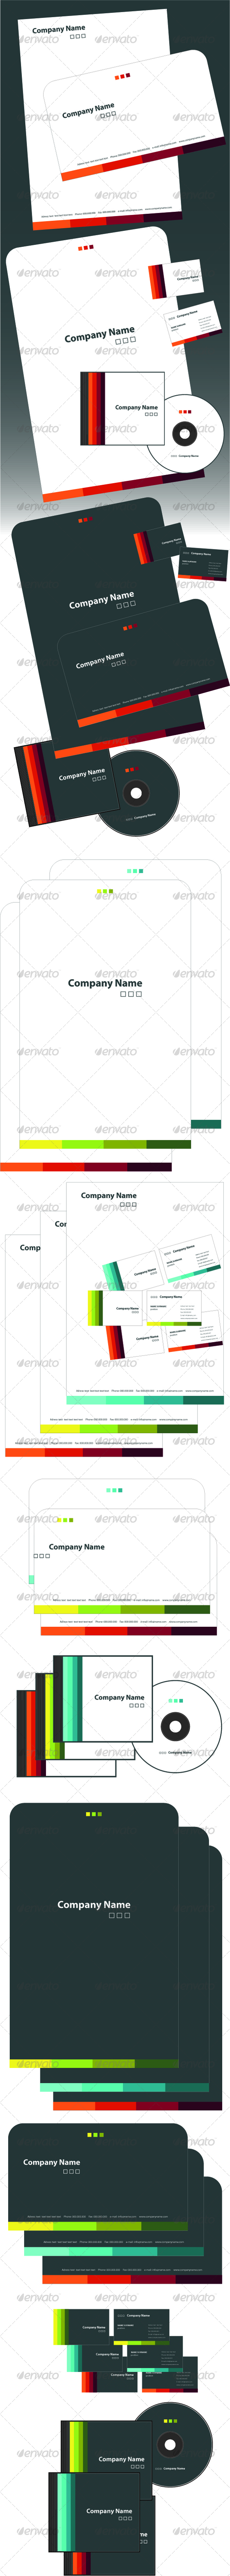 GRADIENT stationery preview - Stationery Print Templates